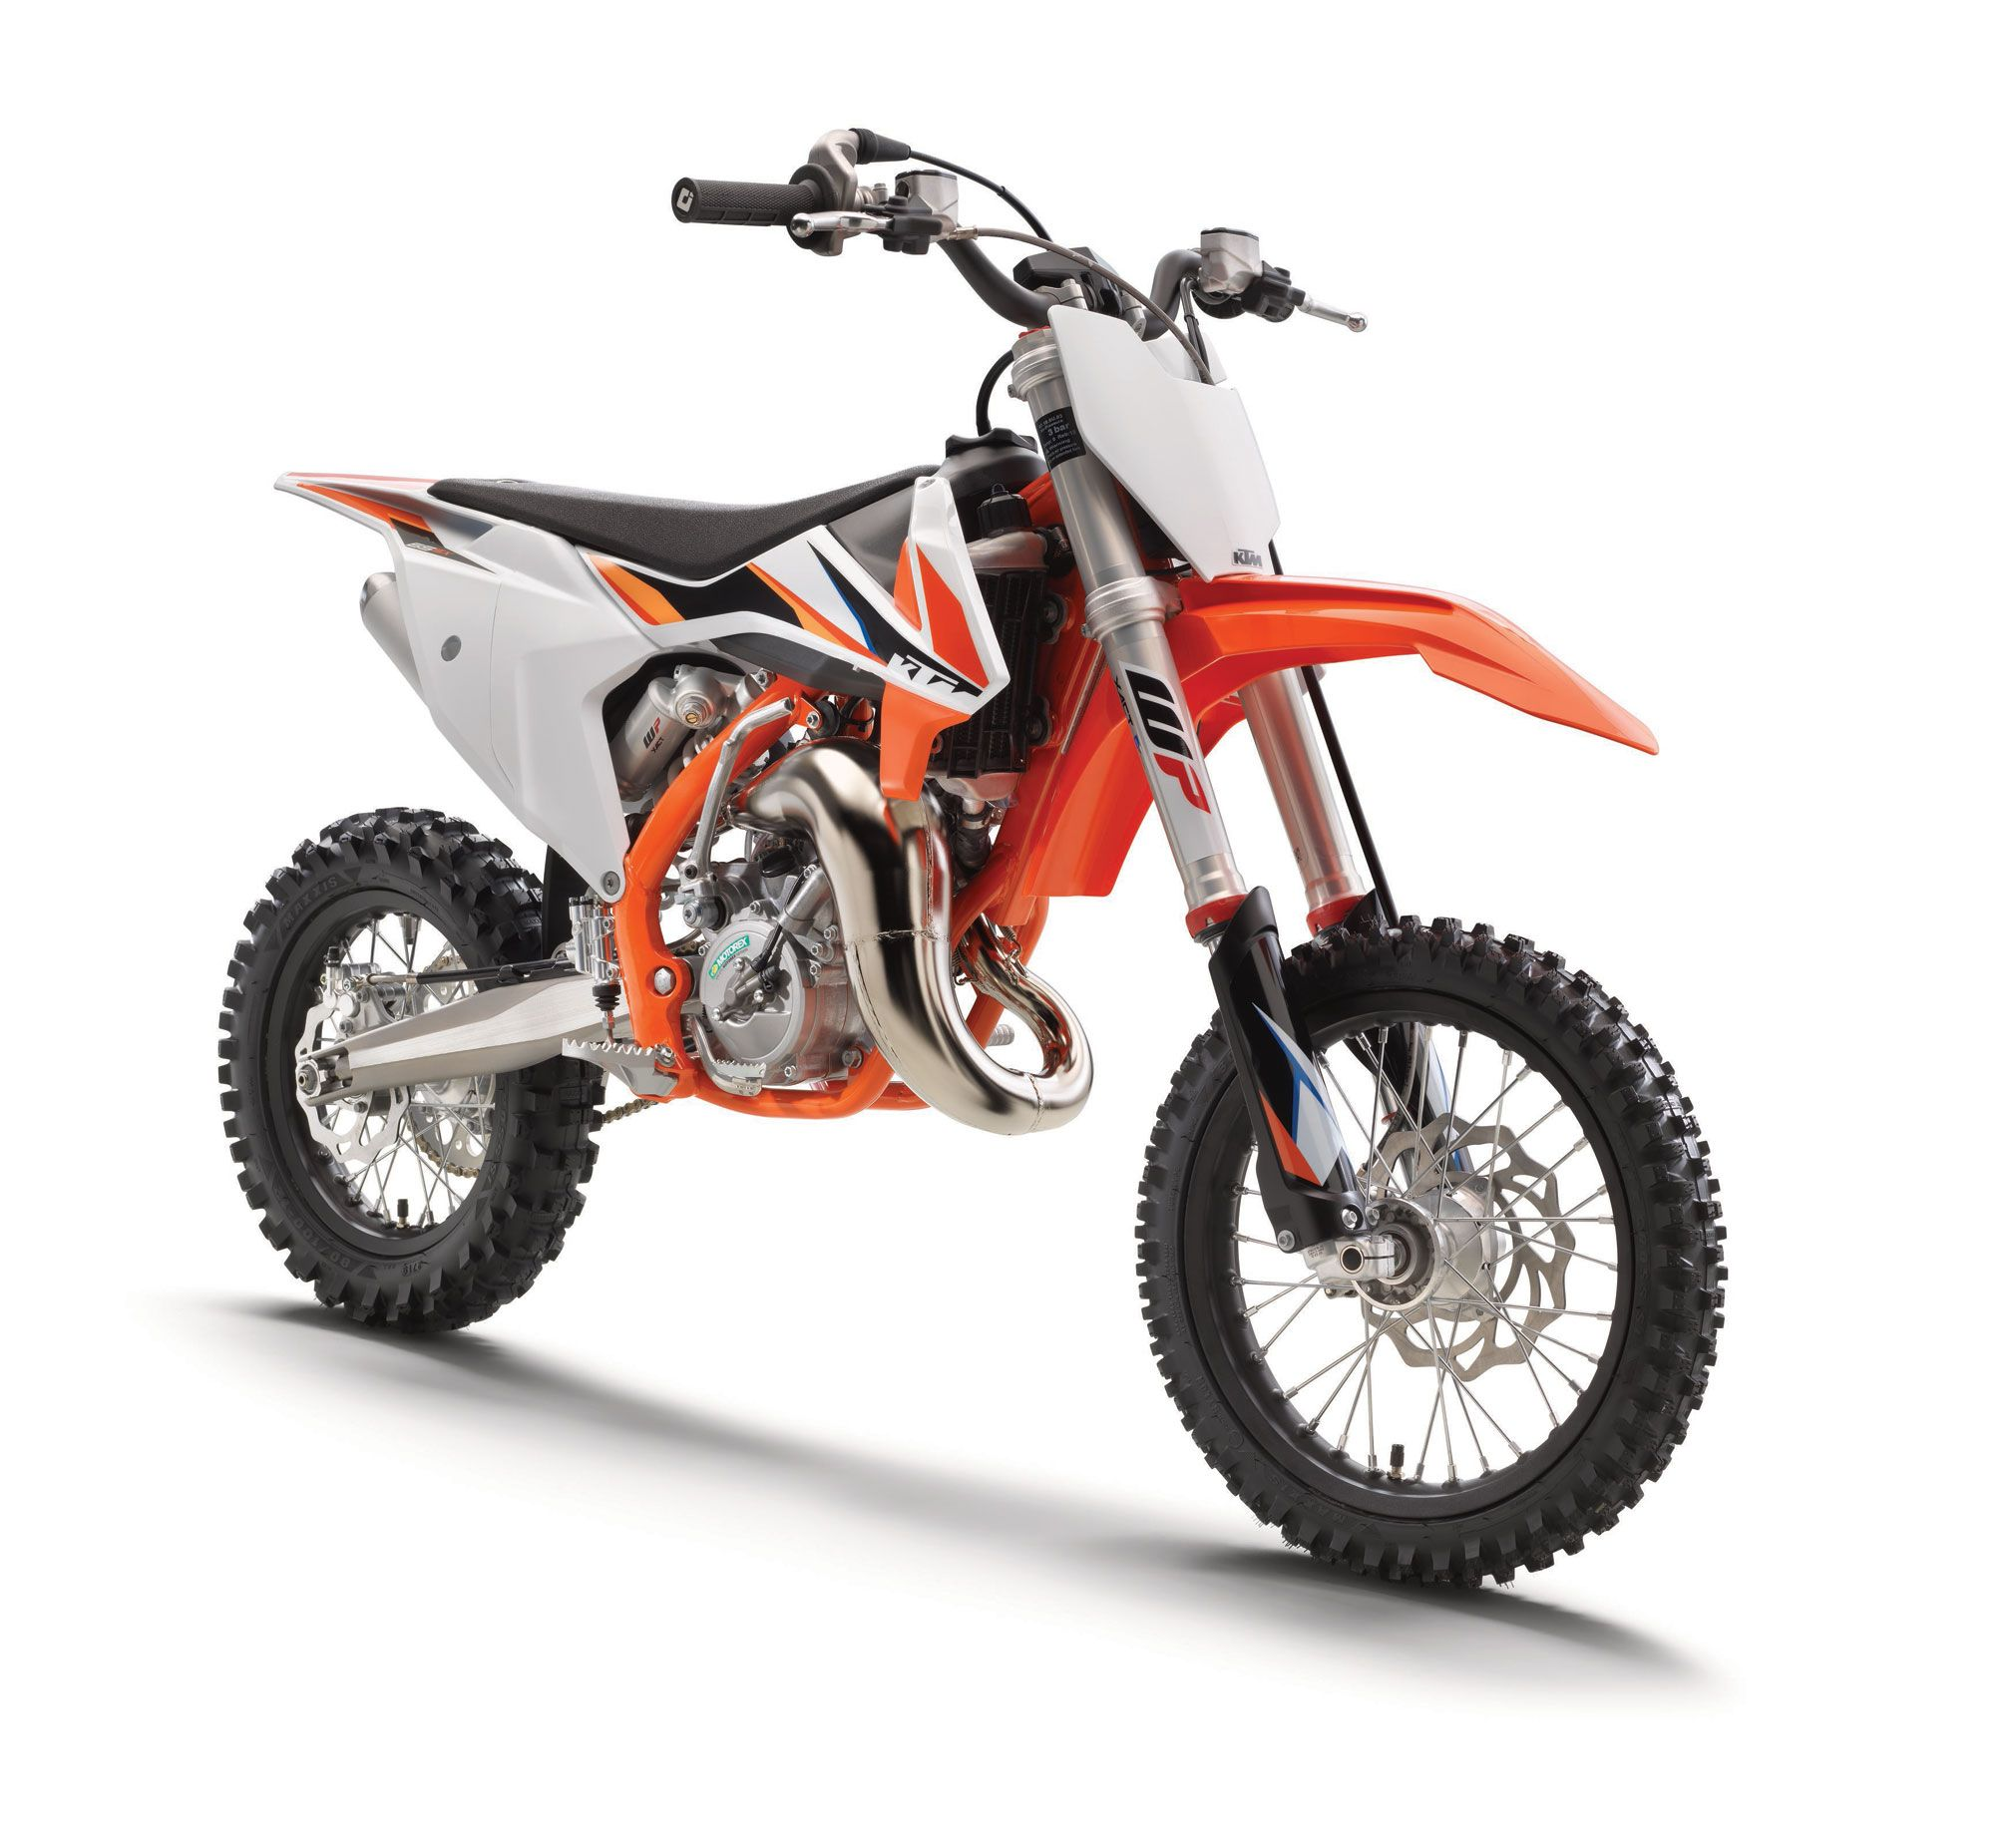 2021motorcyclemodels Motorcycle News 2021 Adventure 2021 Ktm 65 Sx Guide 2021 Ktm 65 Sx Fast Has No Age Limit Introduc Ktm Motorcycle Motorcycle Model